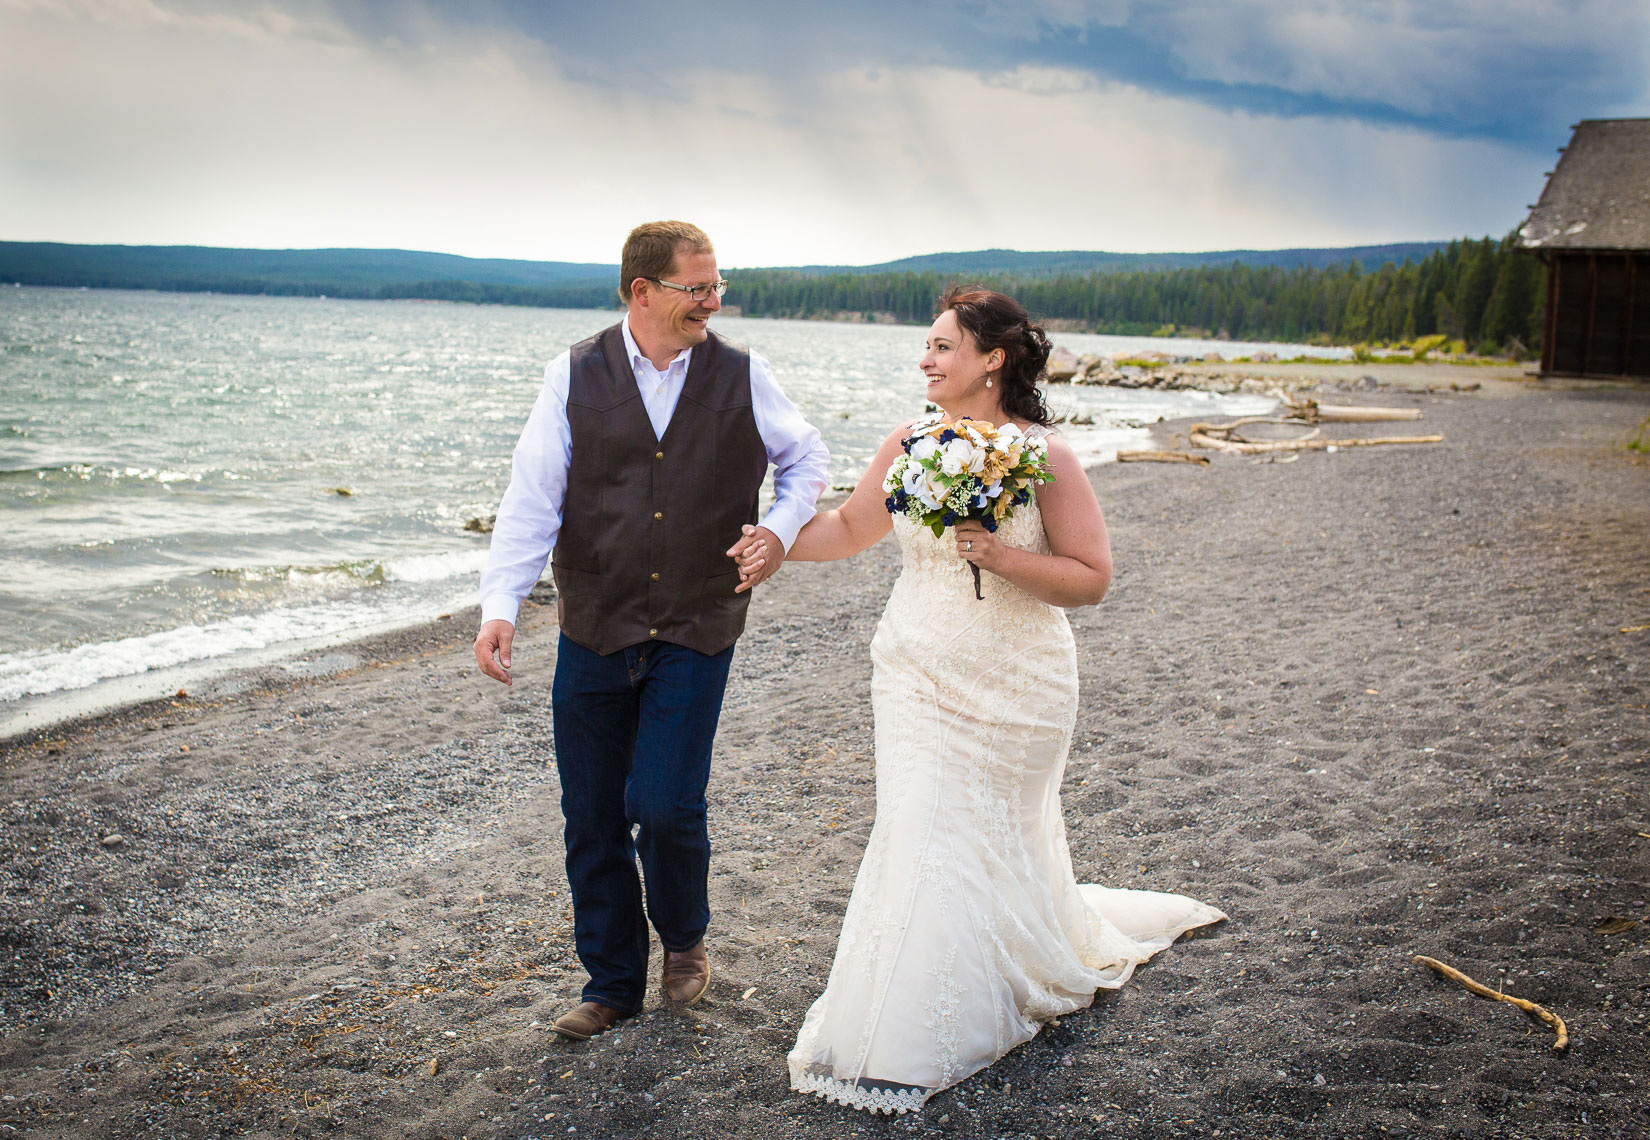 Yellowstone Lake Wedding by Robin Parrott of 2 Birds Studio